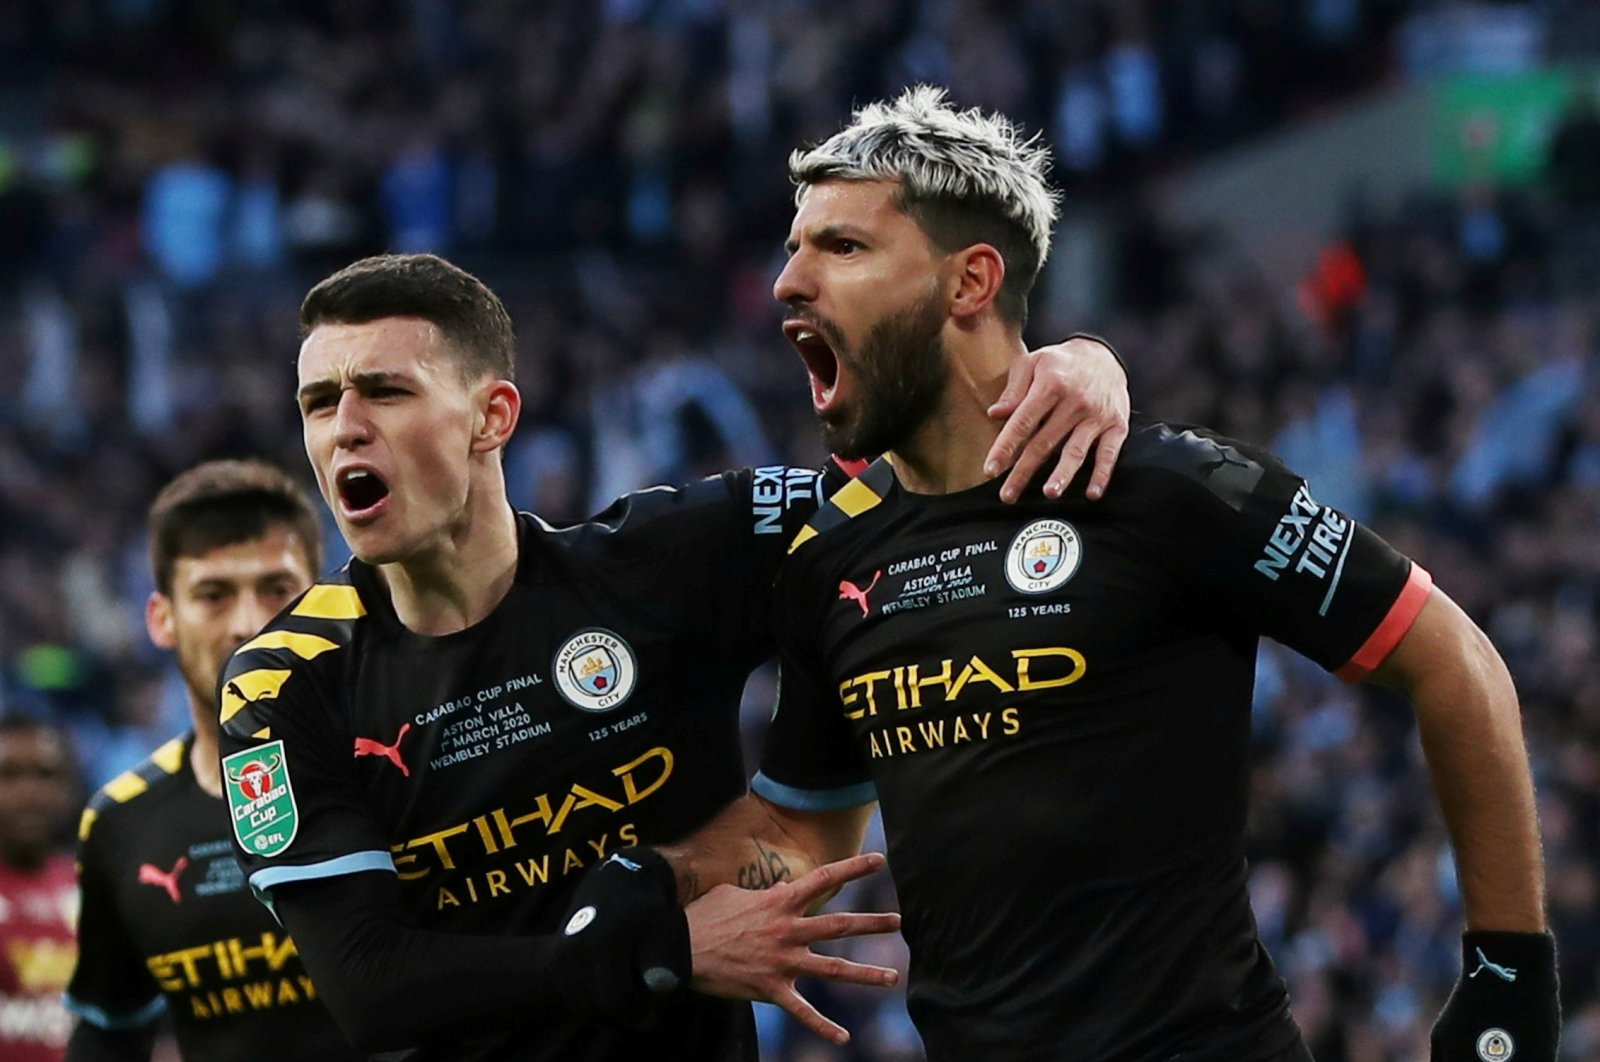 Manchester City's Sergio Aguero (R) and Phil Foden celebrate scoring their first goal against Aston Villa in London, March 1, 2020. (Reuters Photo)